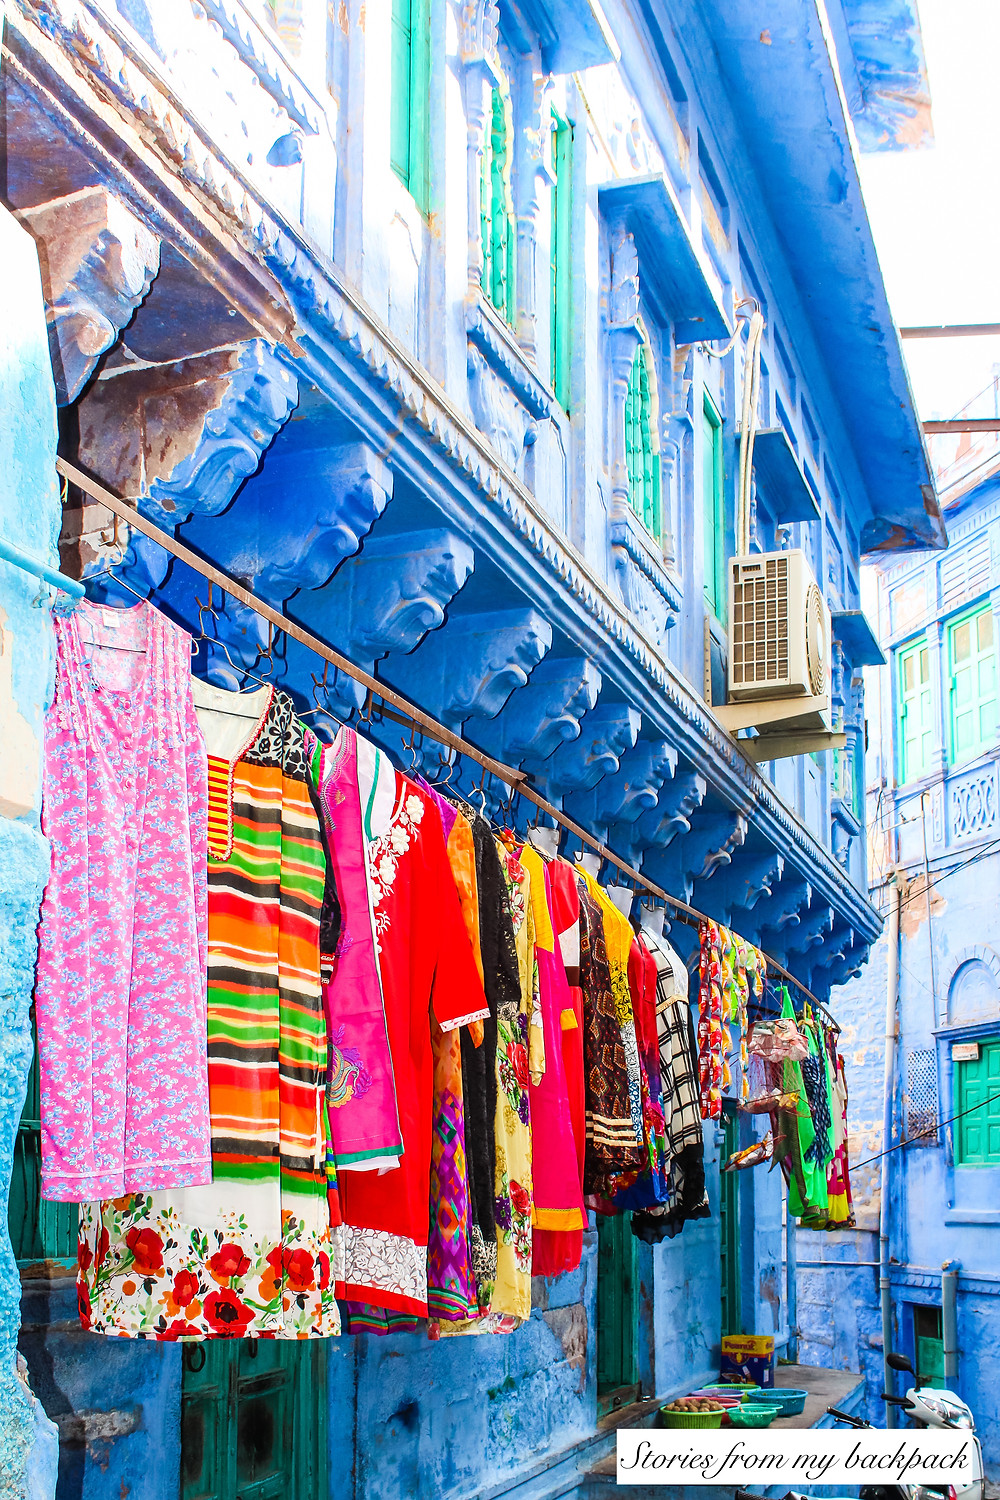 blue city, things to do in jodhpur, why are houses painted blue in jodhpur, where are the blue houses of jodhpur, what to do in the blue city, navigate the blue city, best things to do in jodhpur